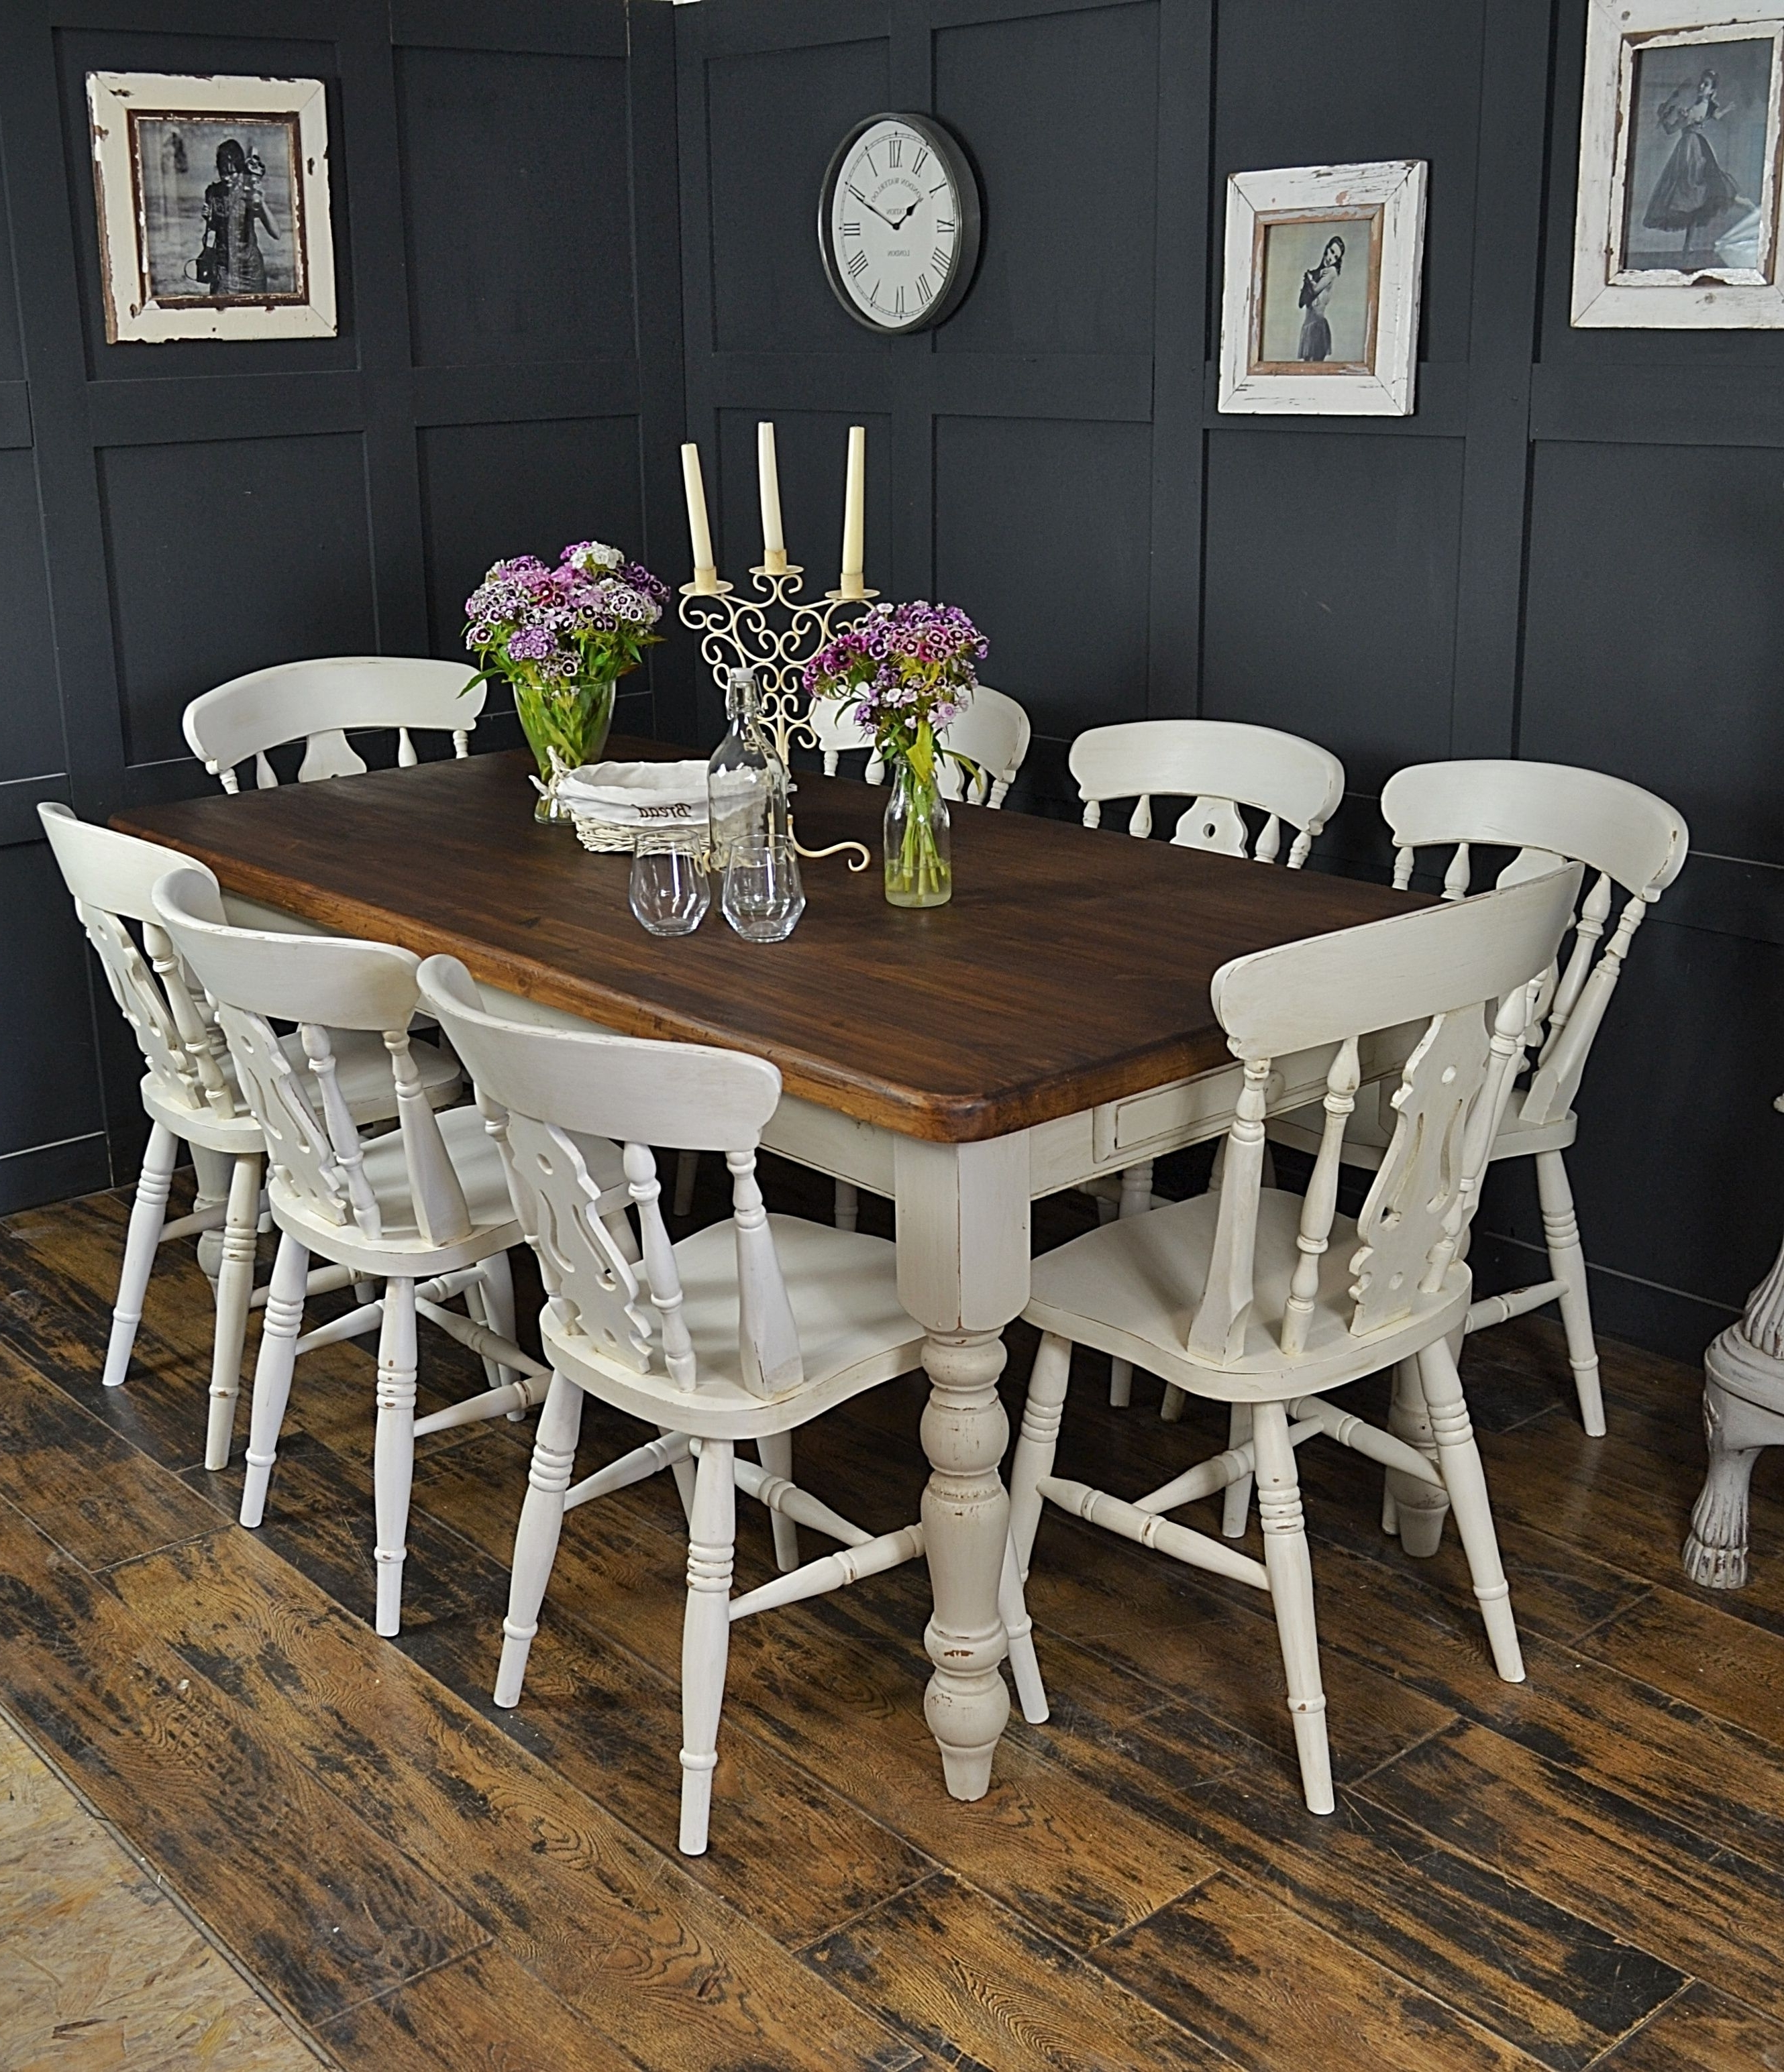 Latest Dine In Style With Our Fabulous 8 Seater Farmhouse Set, Painted In Inside White Dining Tables 8 Seater (View 23 of 25)